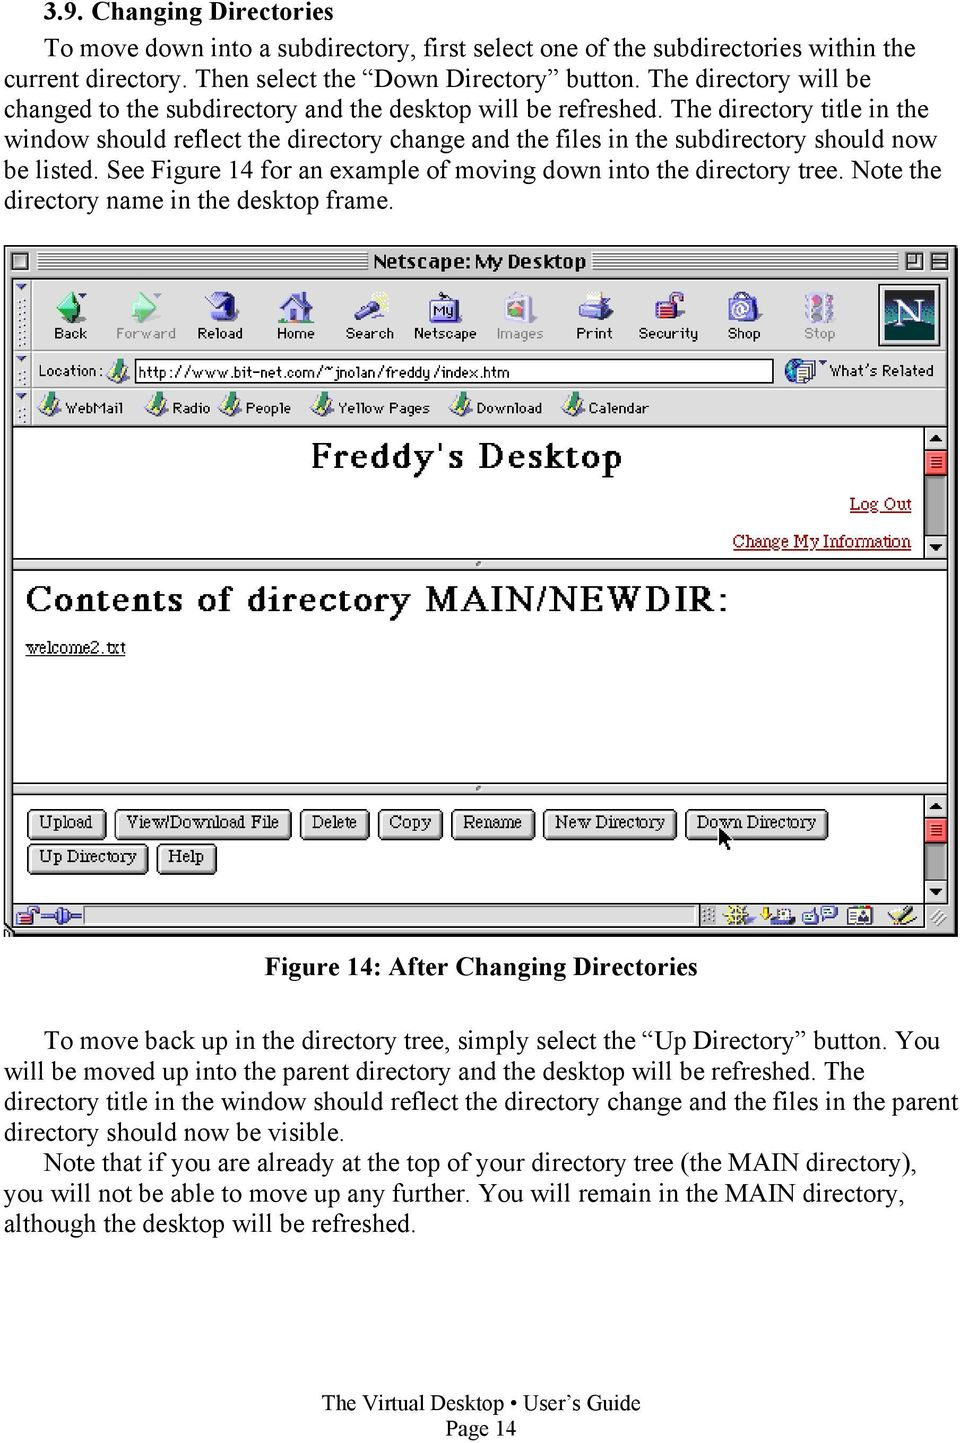 The directory title in the window should reflect the directory change and the files in the subdirectory should now be listed. See Figure 14 for an example of moving down into the directory tree.